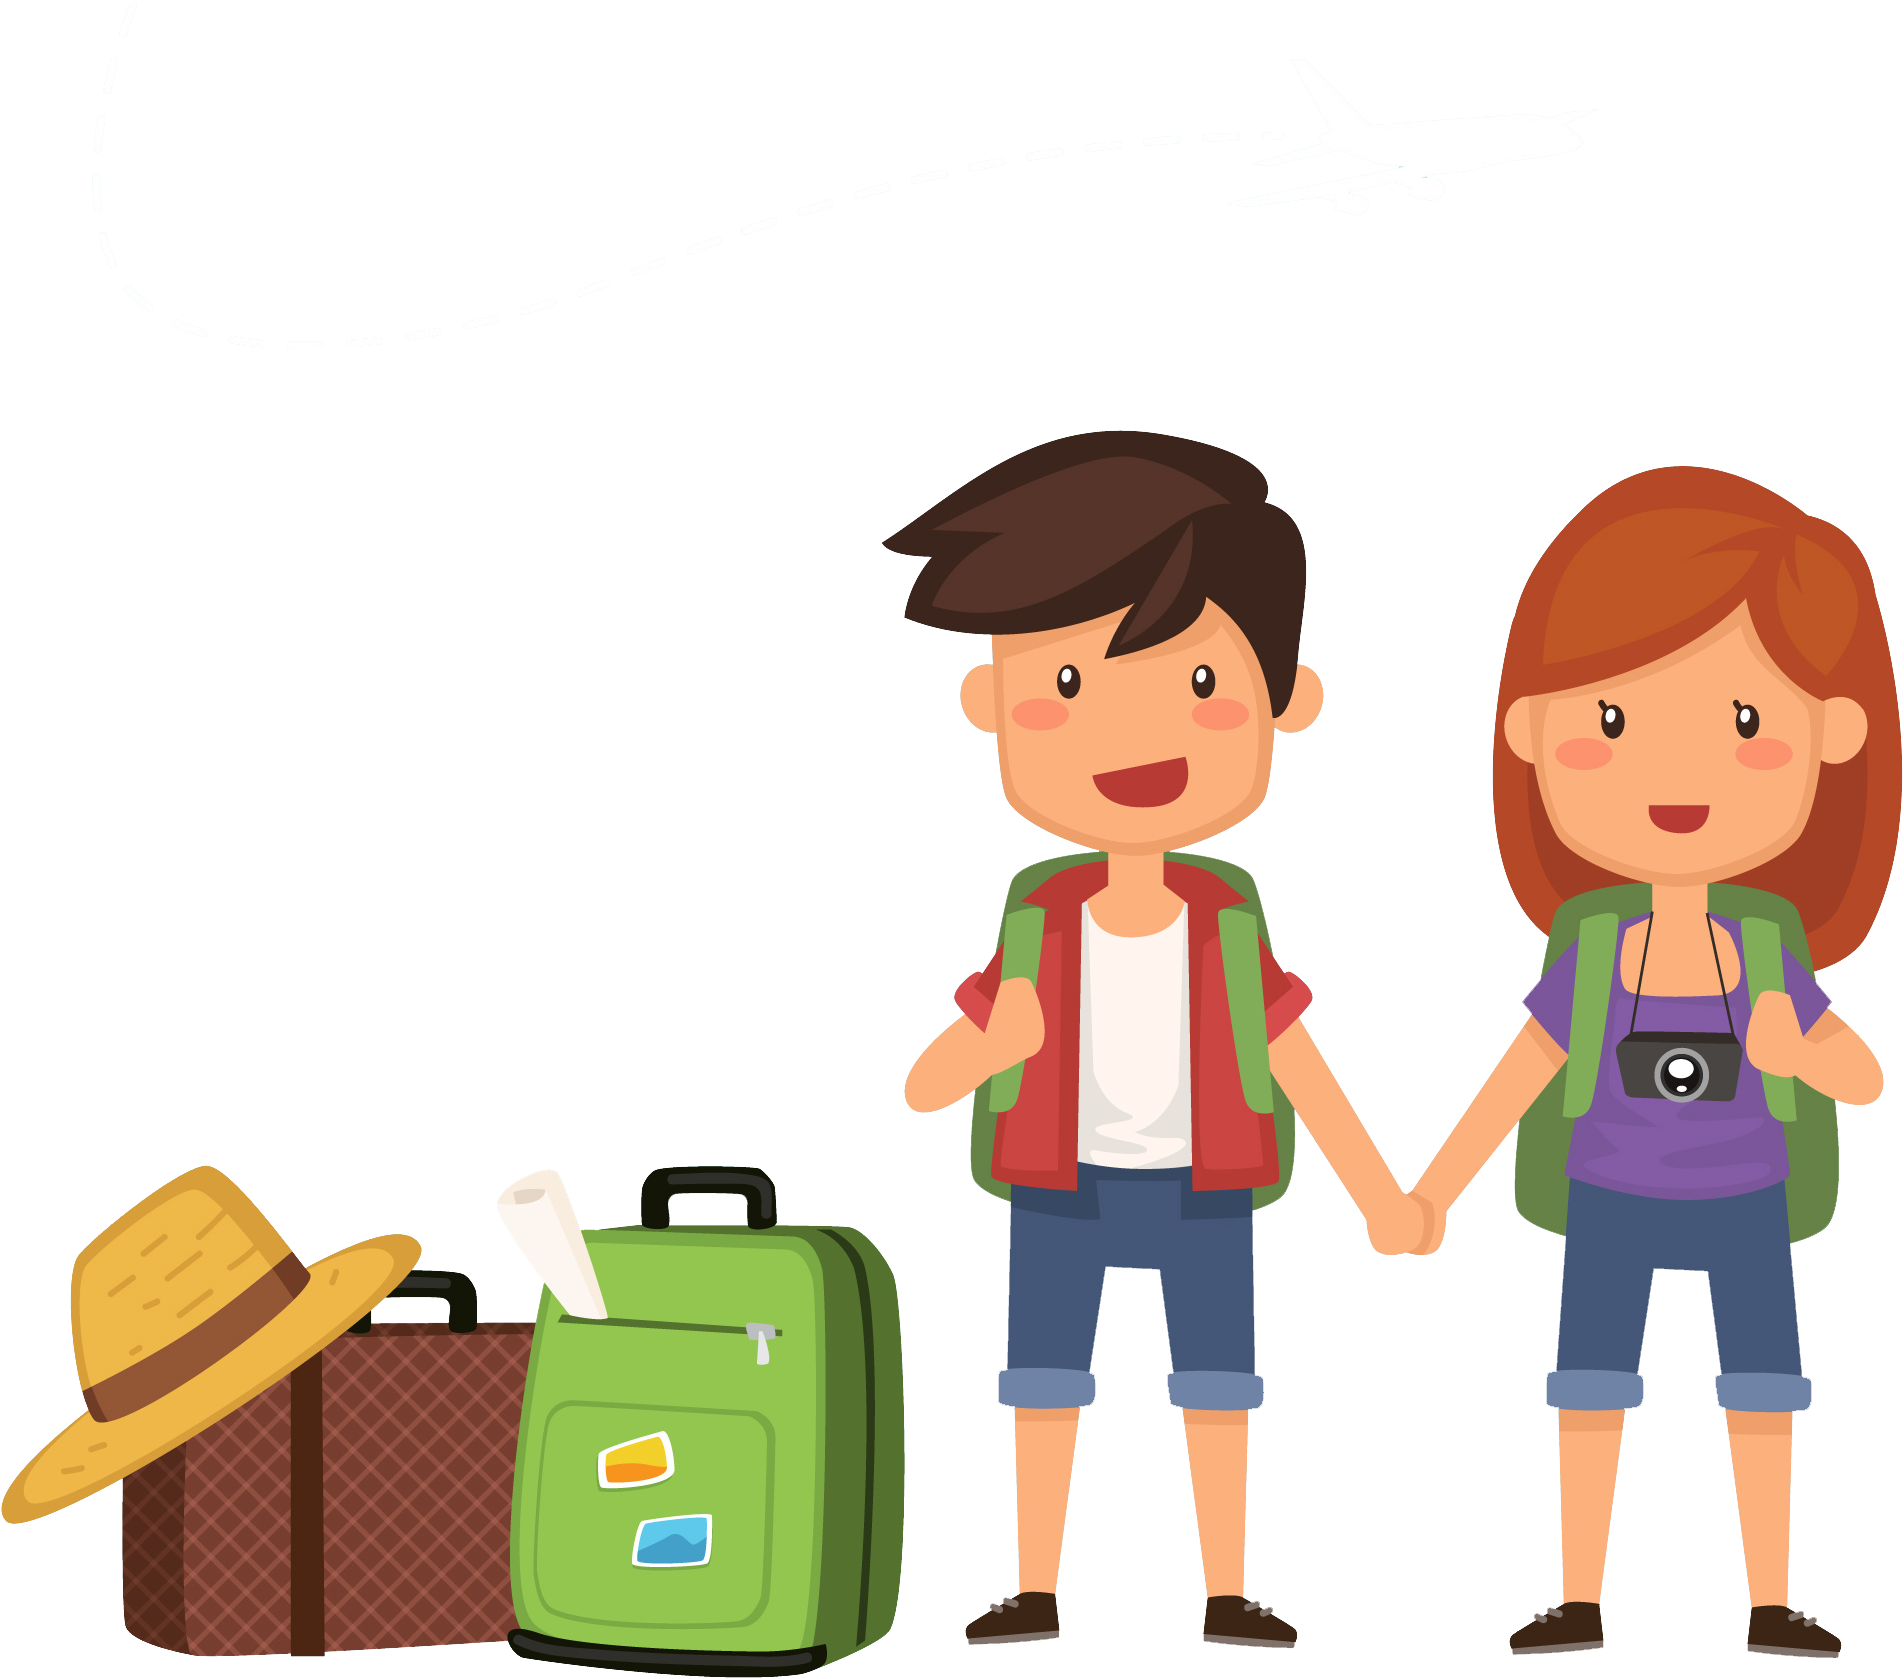 Transparent traveling clipart - Travel Png Free Download Vector, Clipart, Psd - Travel Png Free